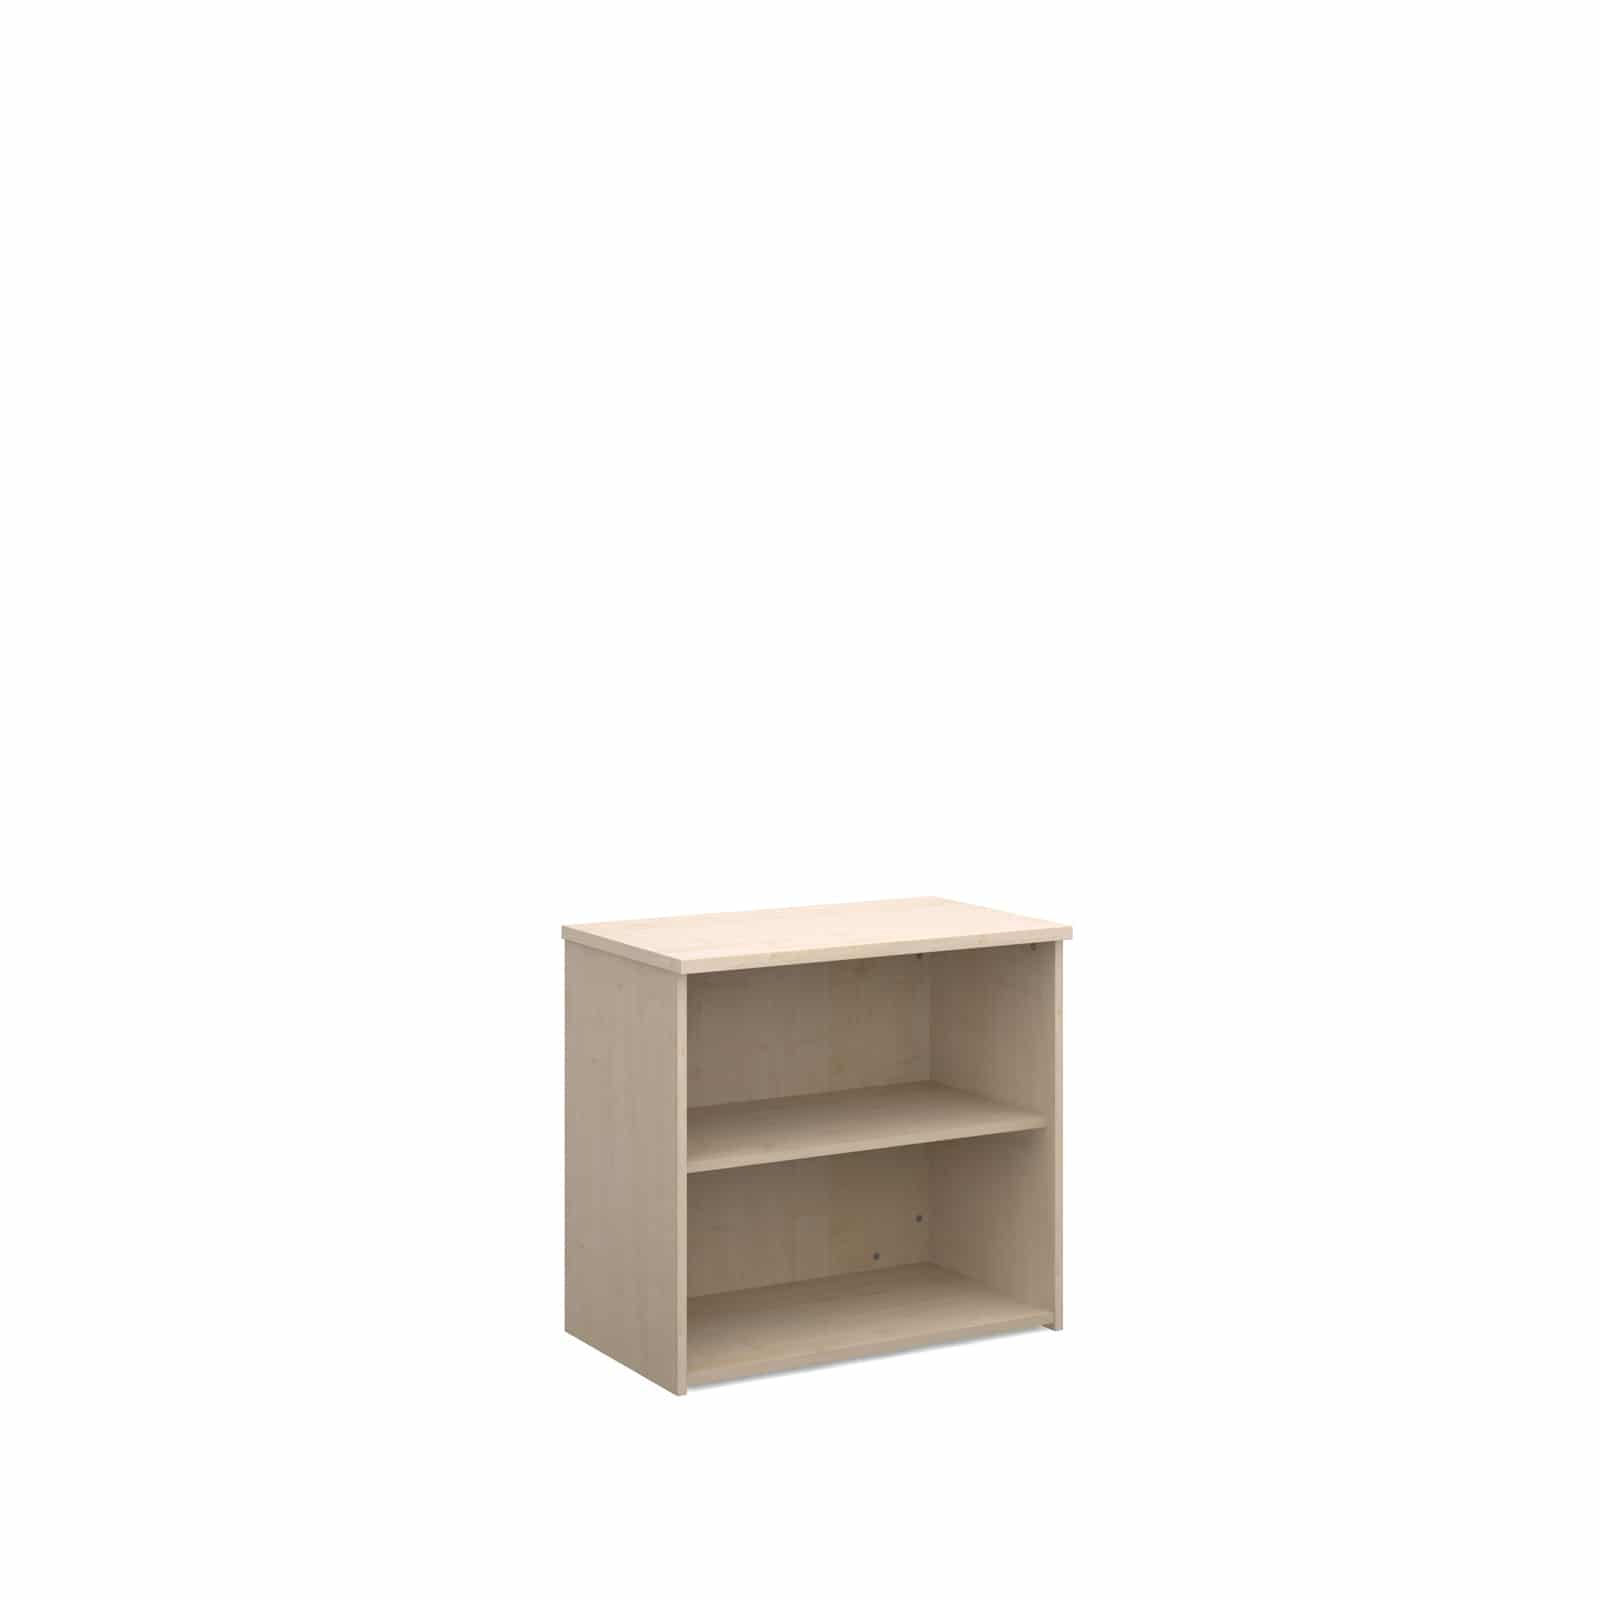 Maple Wood Office Shelving Unit 740mm 2 shelf